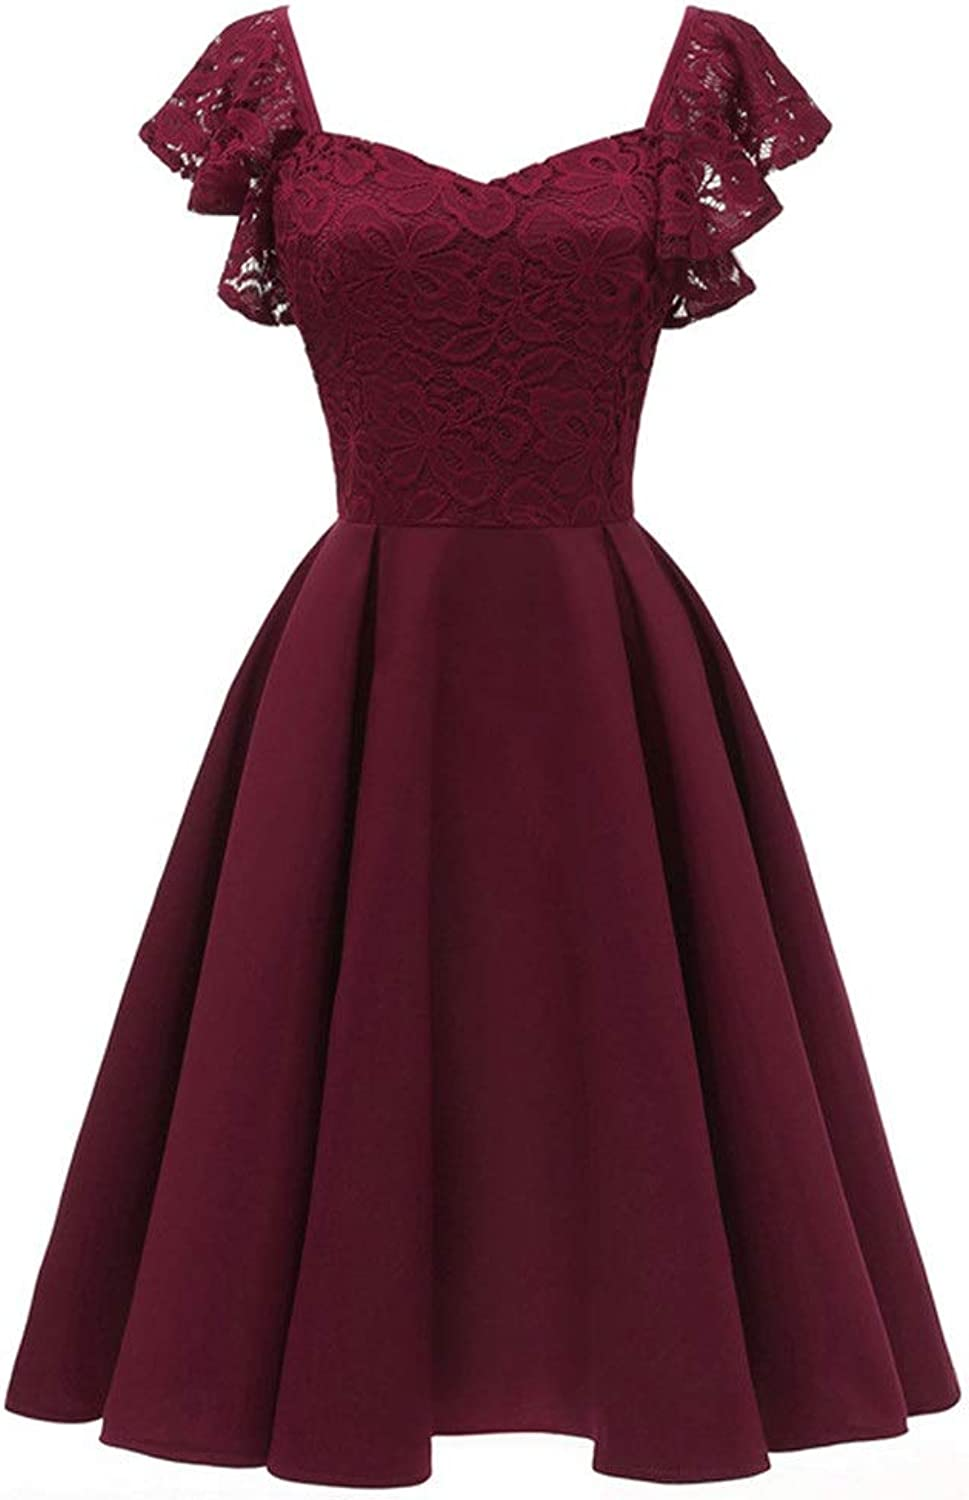 Womens Party Dress Womens Sleeve Party Dresses Prom Evening Lace Butterfly Cocktail Dress (color   Wine red, Size   XL)